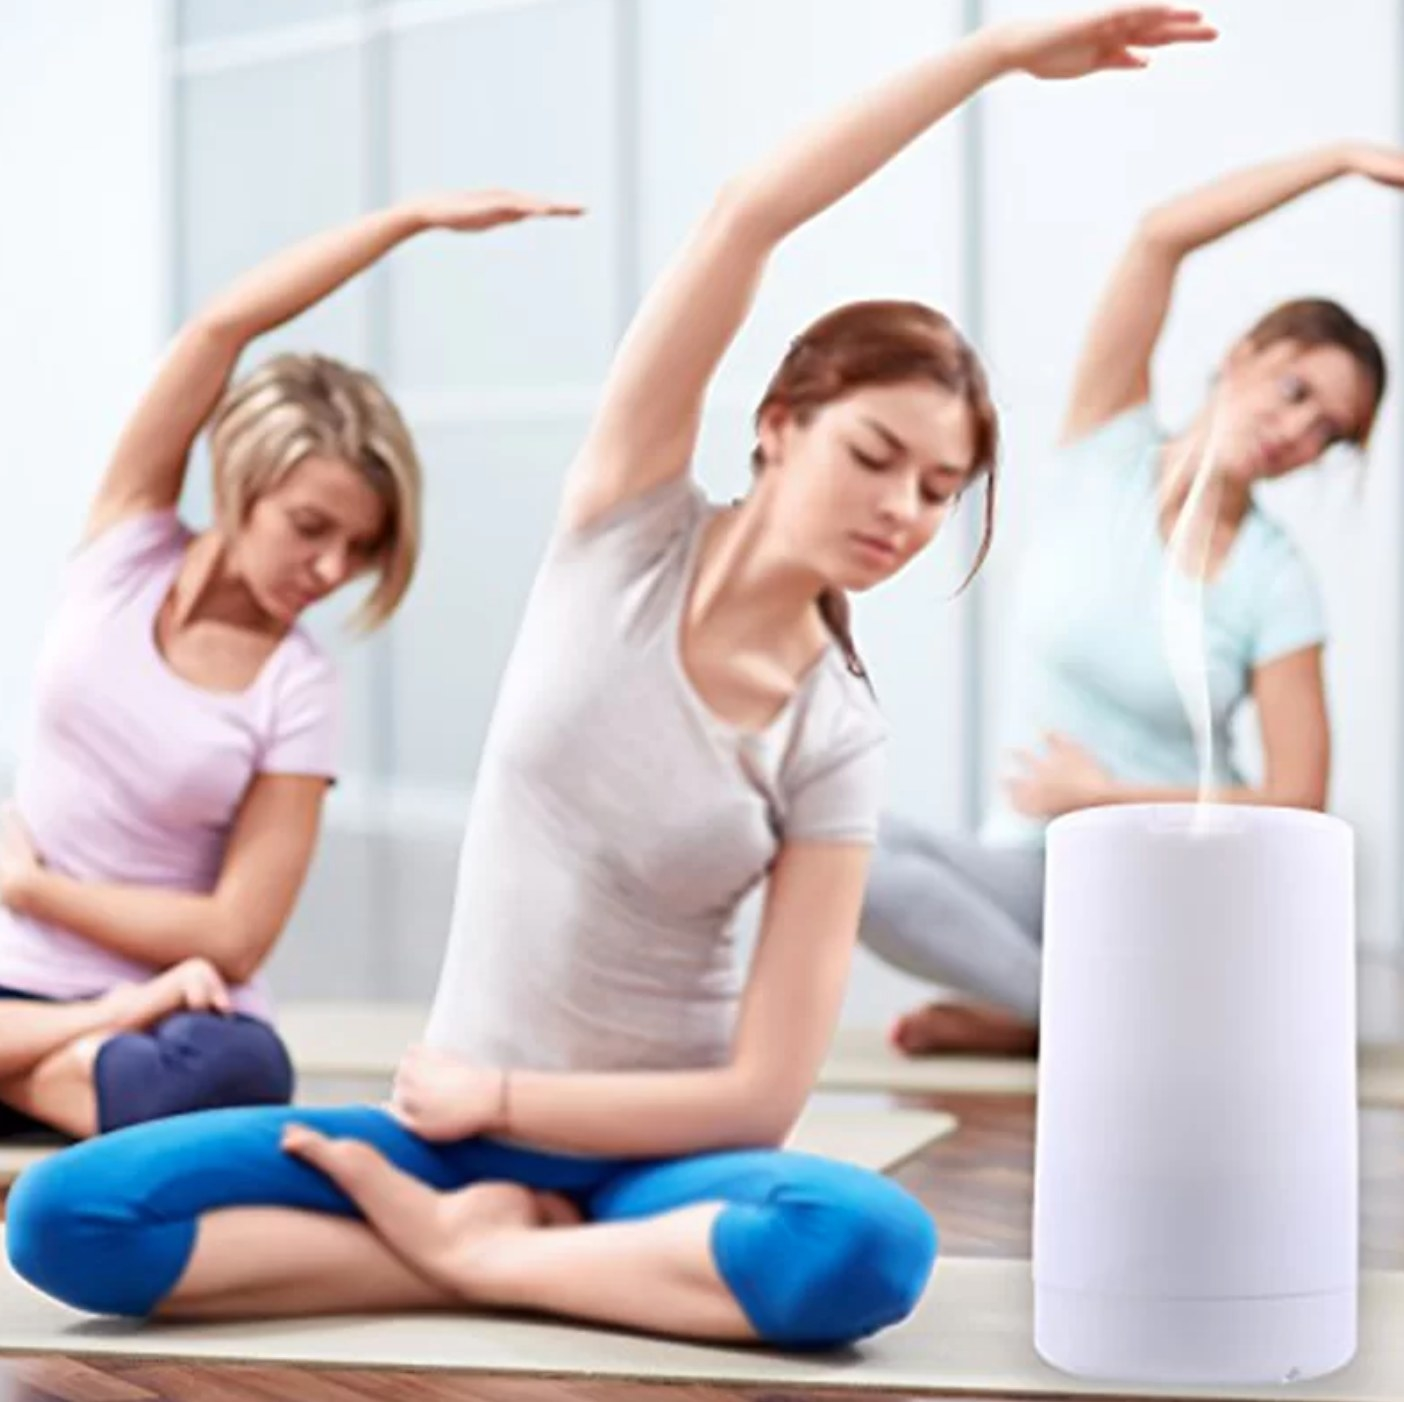 The diffuser in white being used in a yoga class